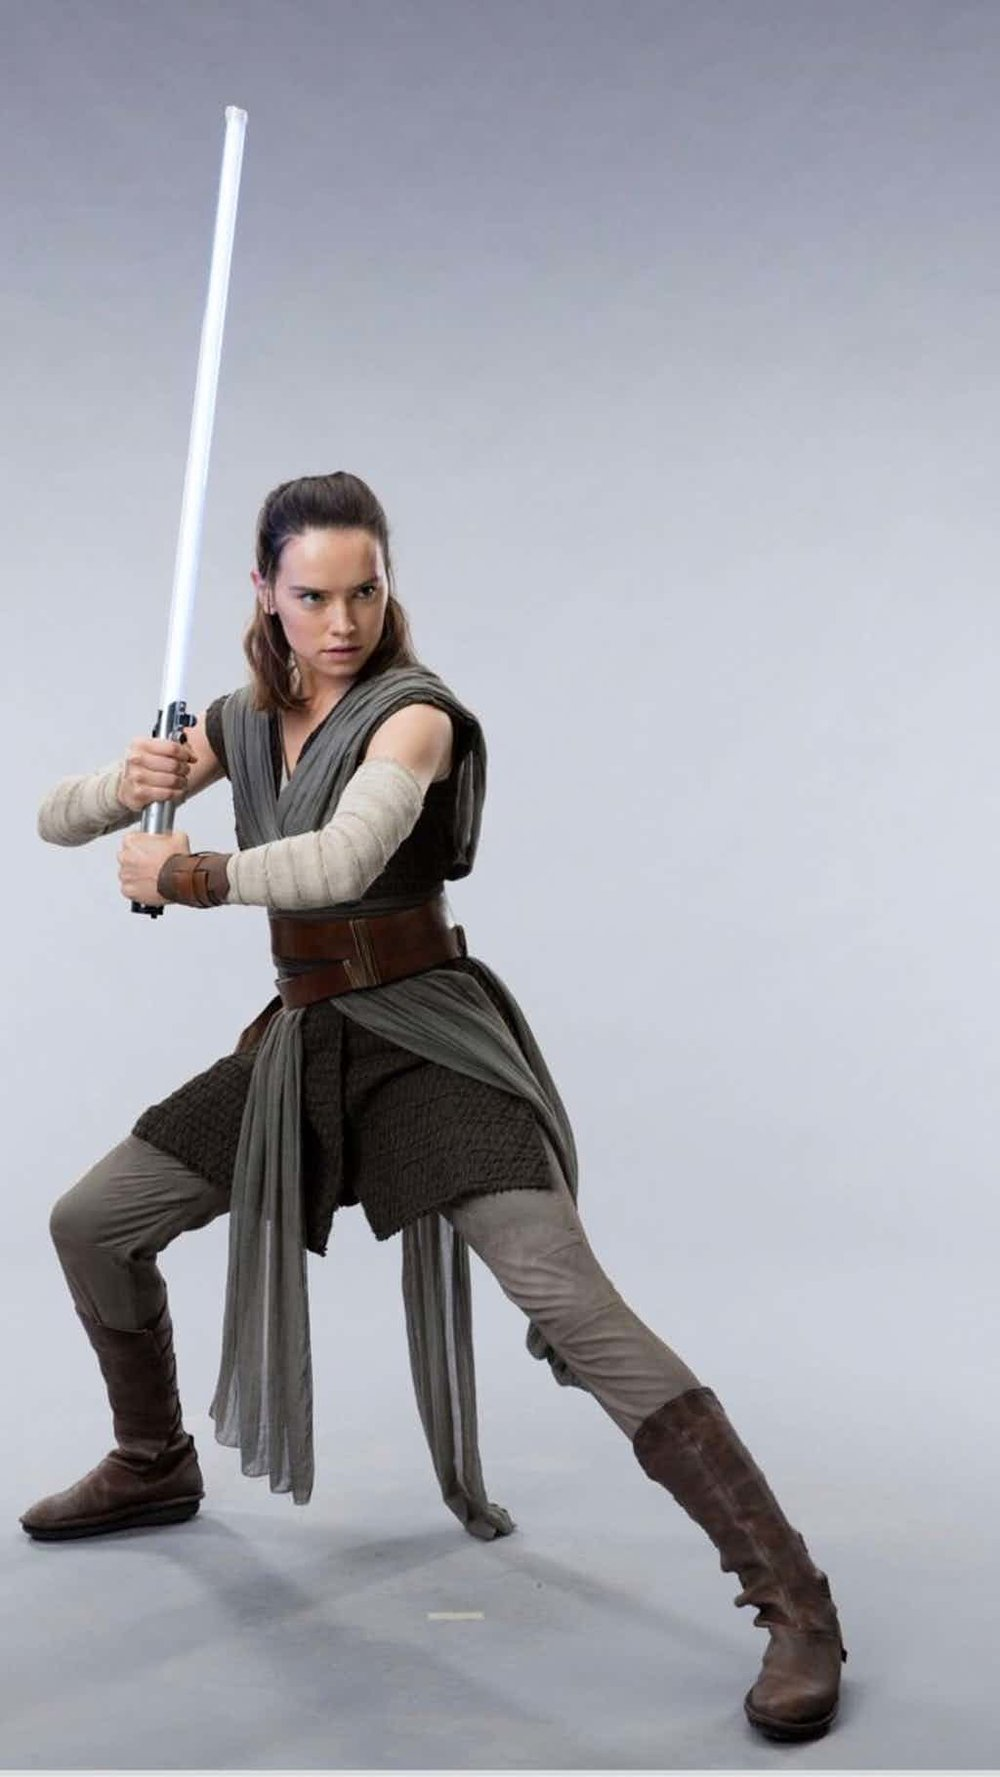 Star-Wars-The-Last-Jedi-Daisy-Ridley-as-Rey-Promo-Post-With-Prop-Lightsaber.jpg